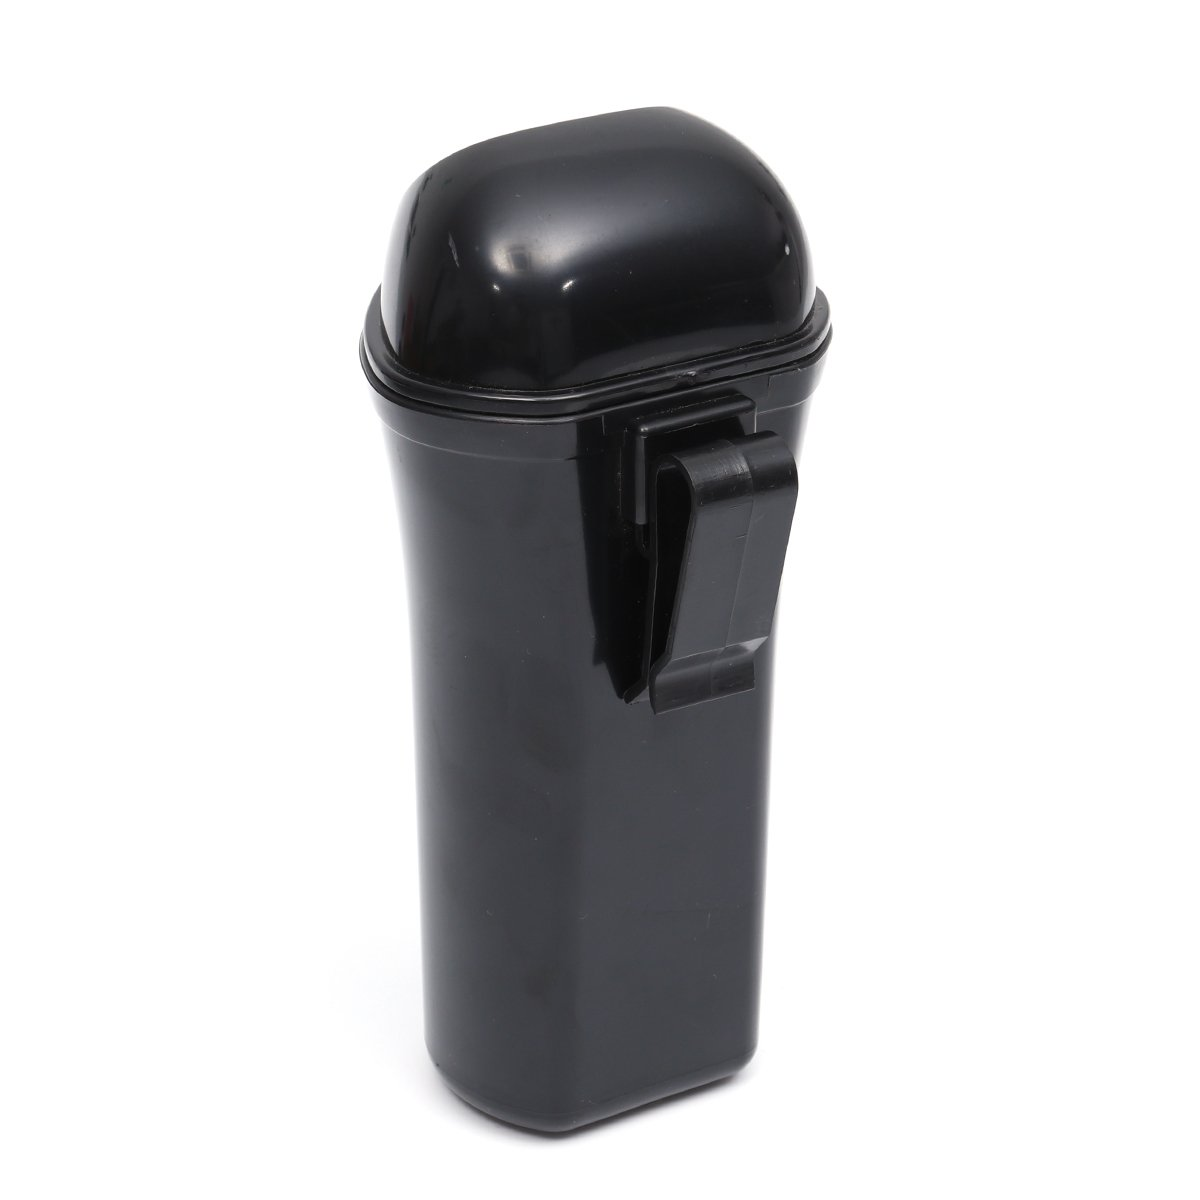 Black LIOOBO Mini Car Trash Can Bin with Lid Auto Dustbin Organizer Leakproof Vehicle Trash Bin Garbage Can